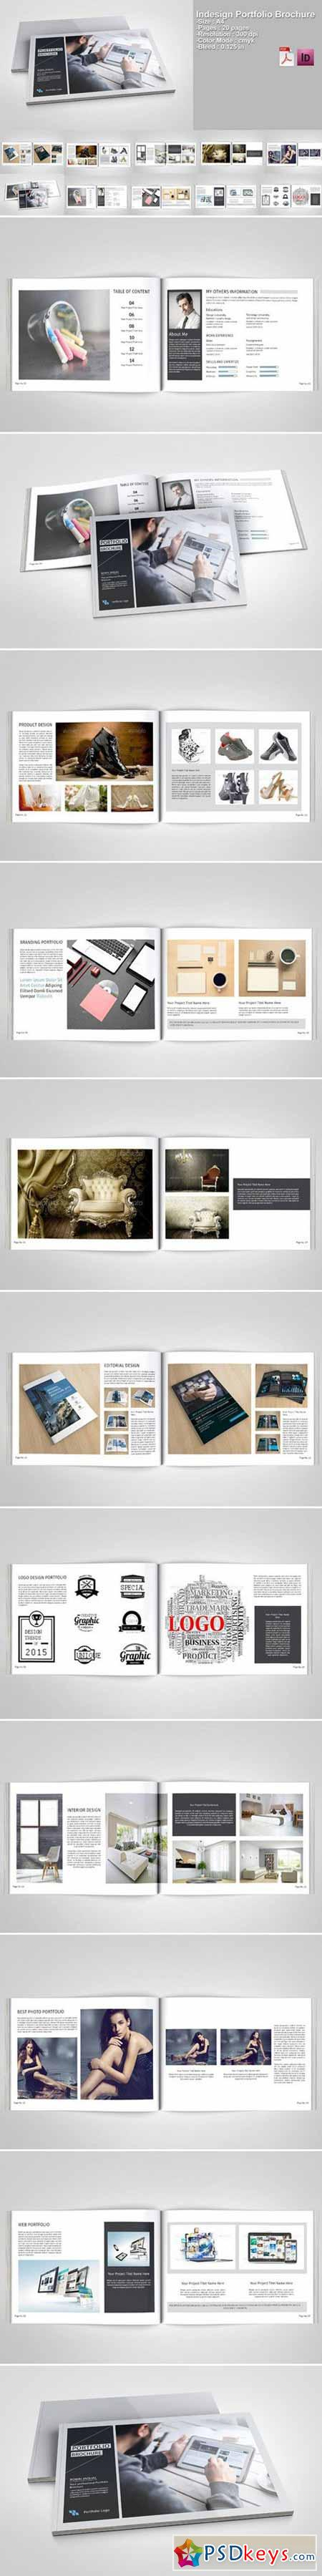 Indesign Portfolio Brochure-V217 411811